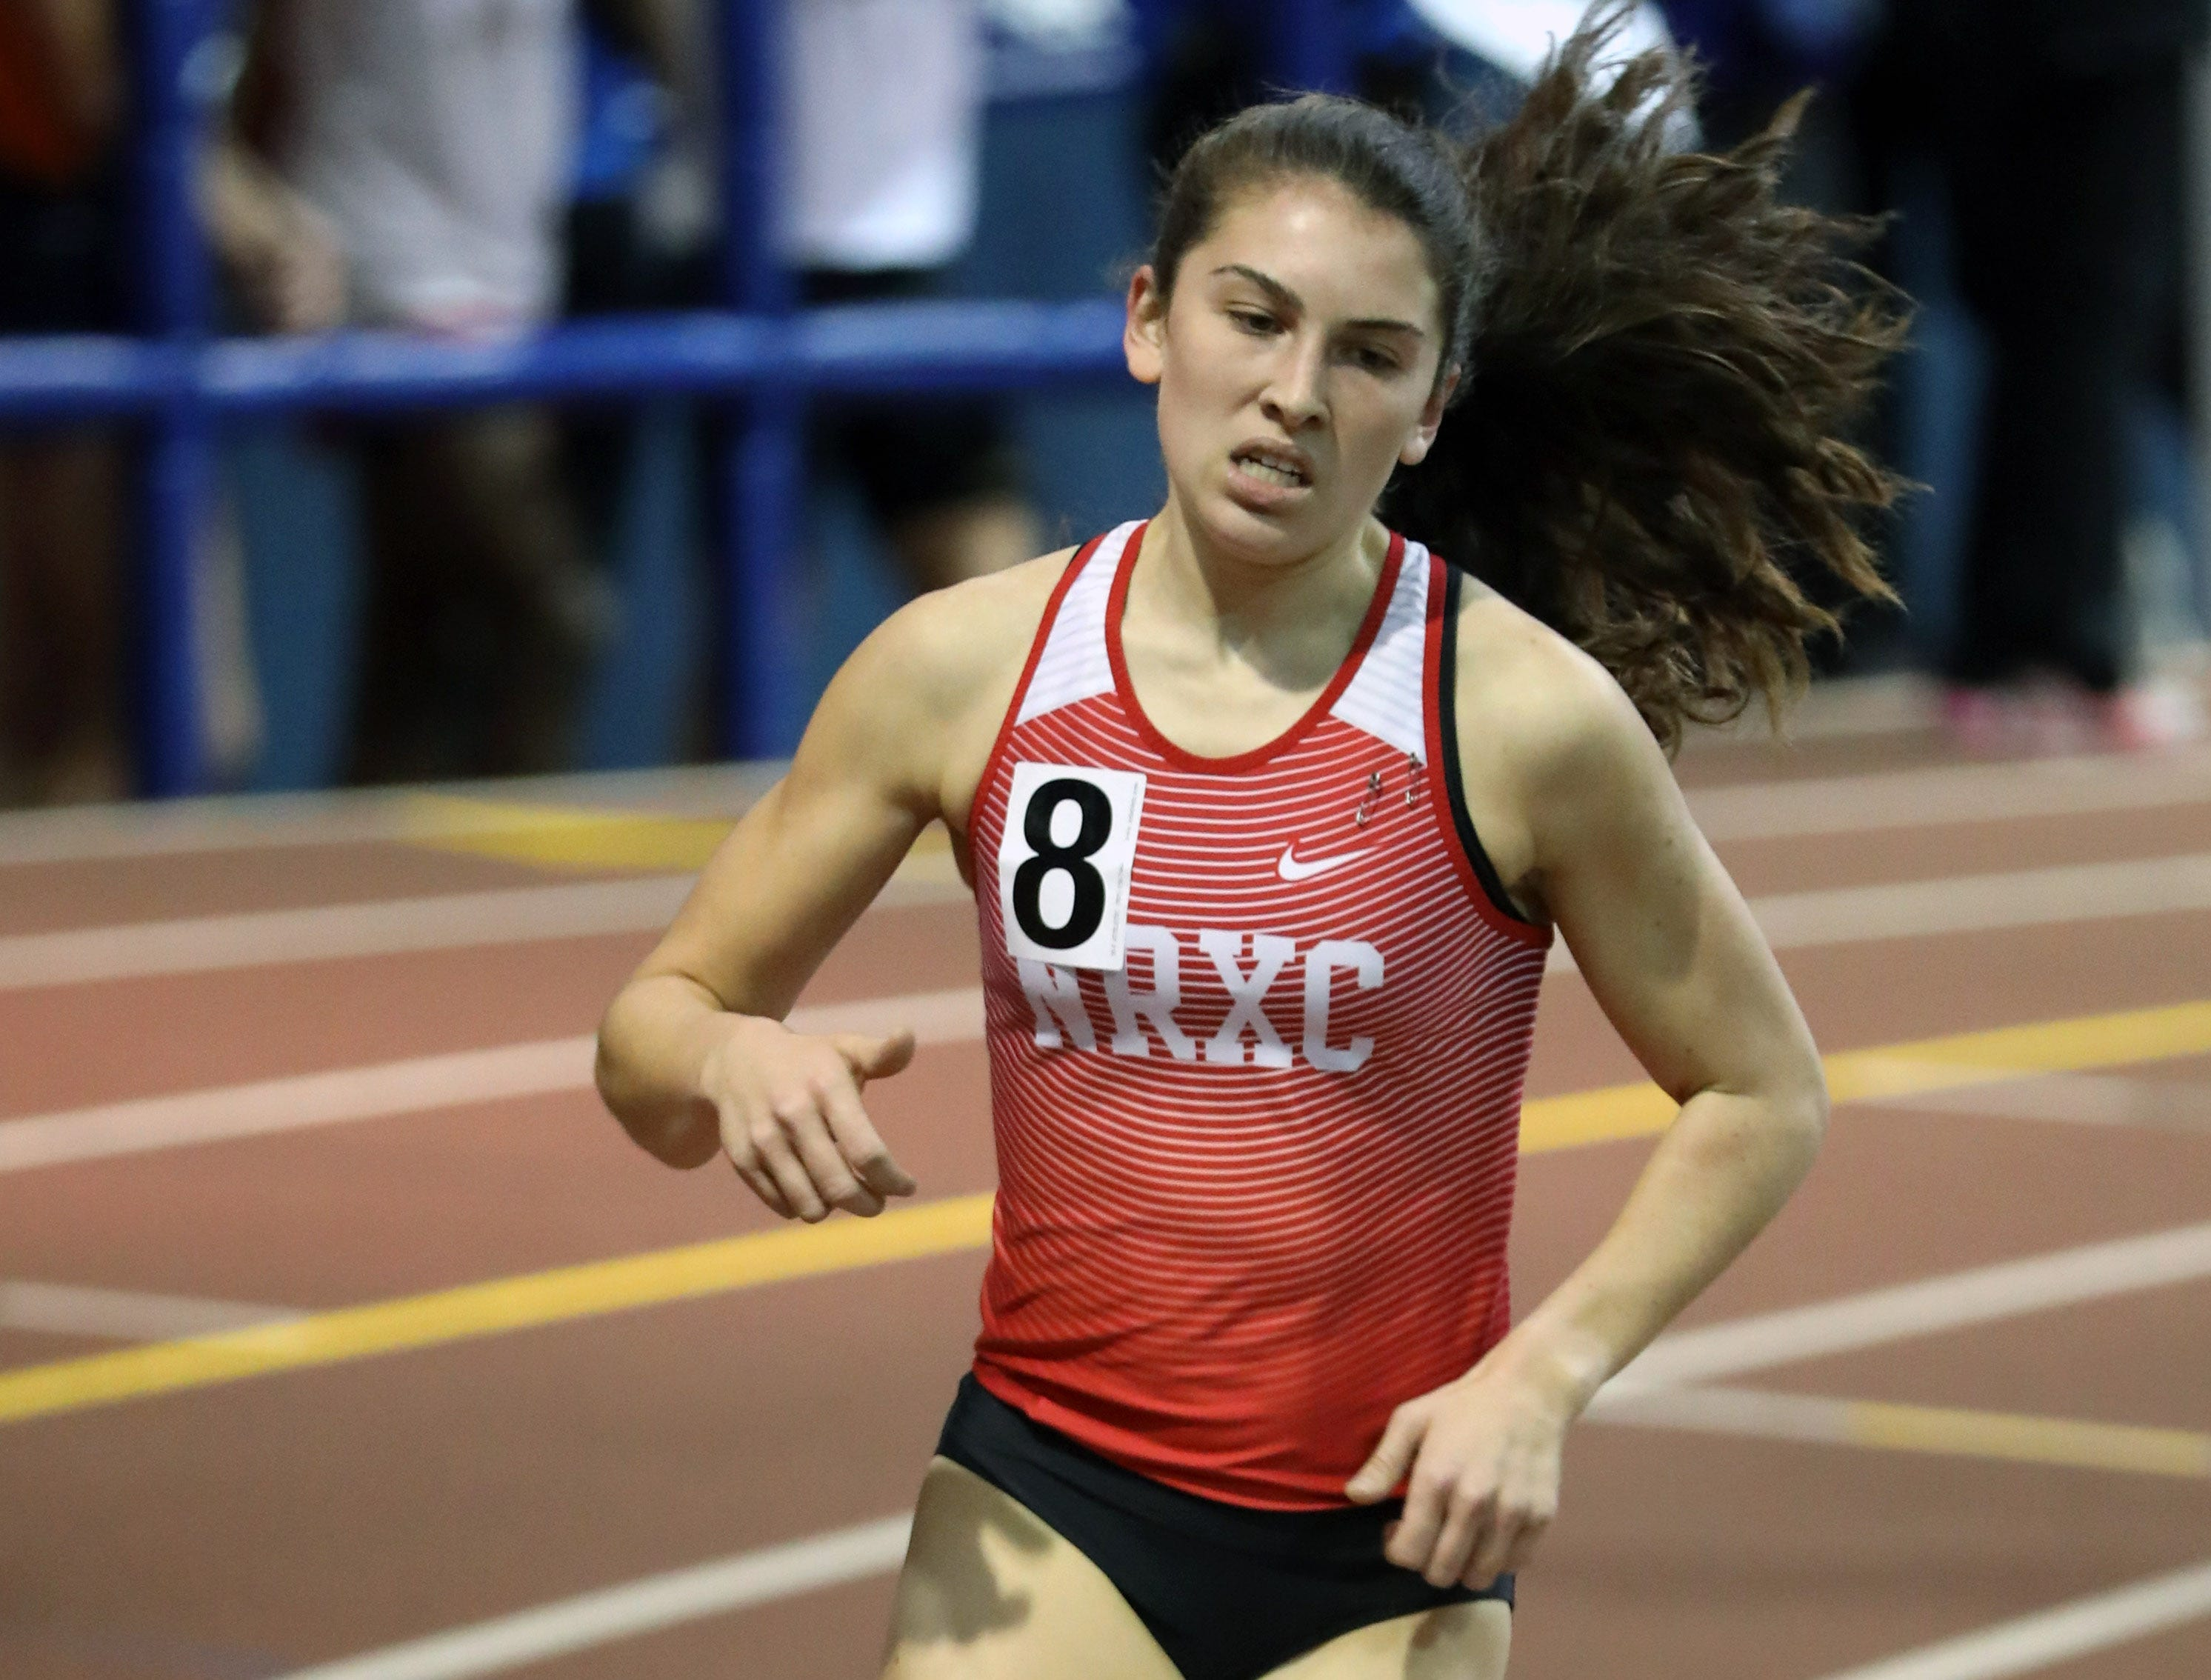 North Rockland's Haleigh Morales competes in the Girls invitational mile during the Millrose Games Trials at the Armory in Manhattan Jan. 9, 2019.